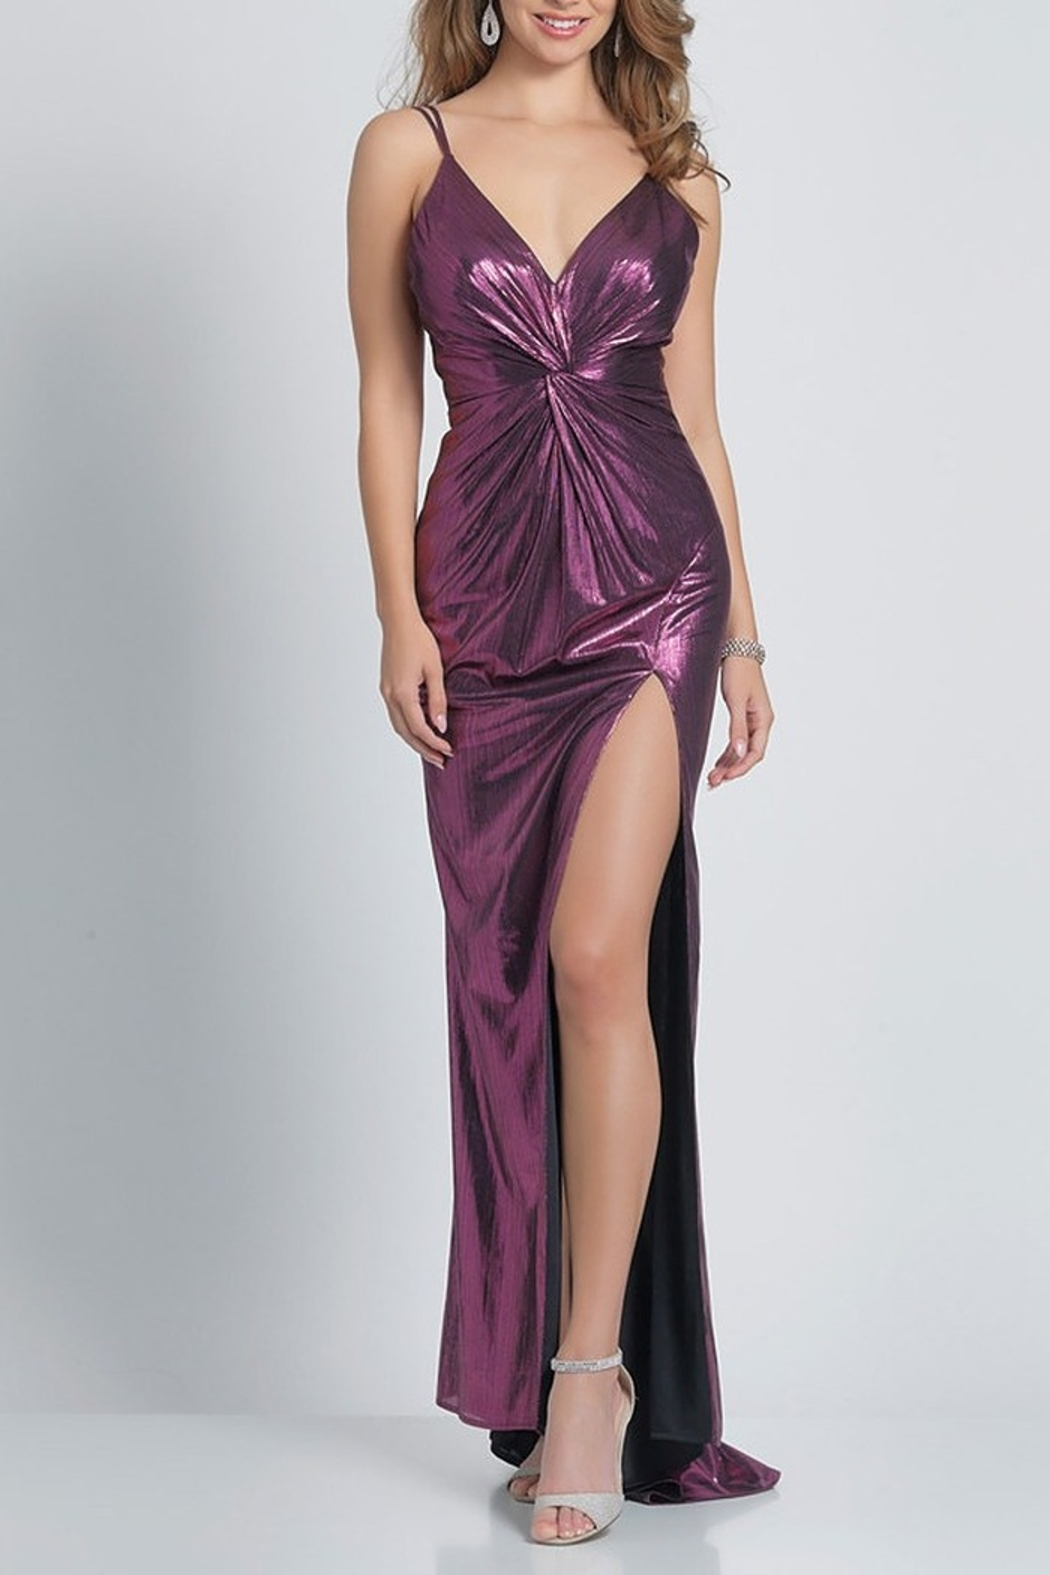 Dave and Johnny Foil Gathered Slip Gown W/ Slit - Main Image